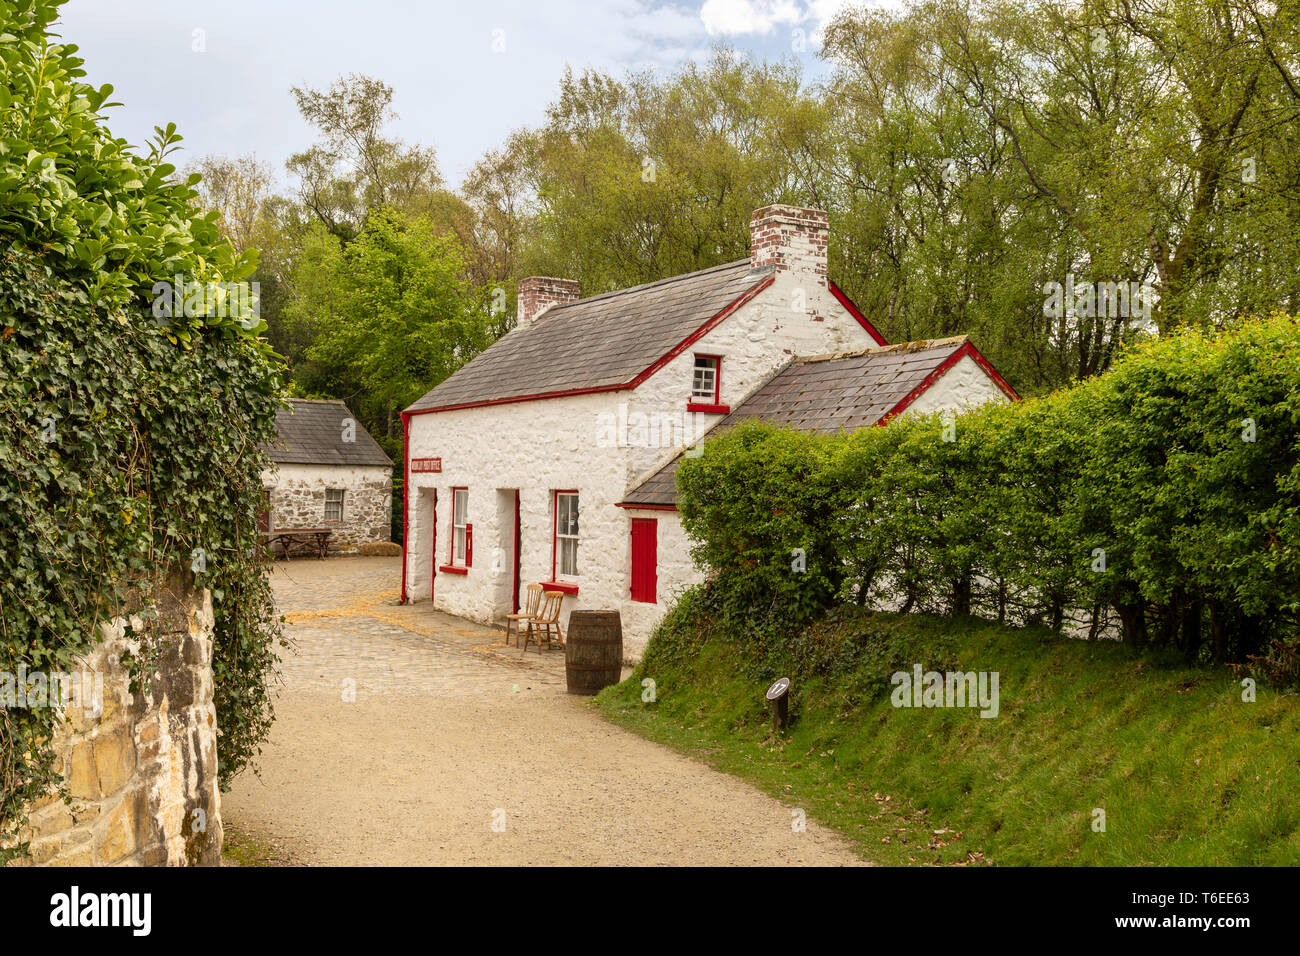 View of Mountjoy Post Office at the Ulster American Folk Park, Omagh, County Tyrone, Northern Ireland, United Kingdom. - Stock Image